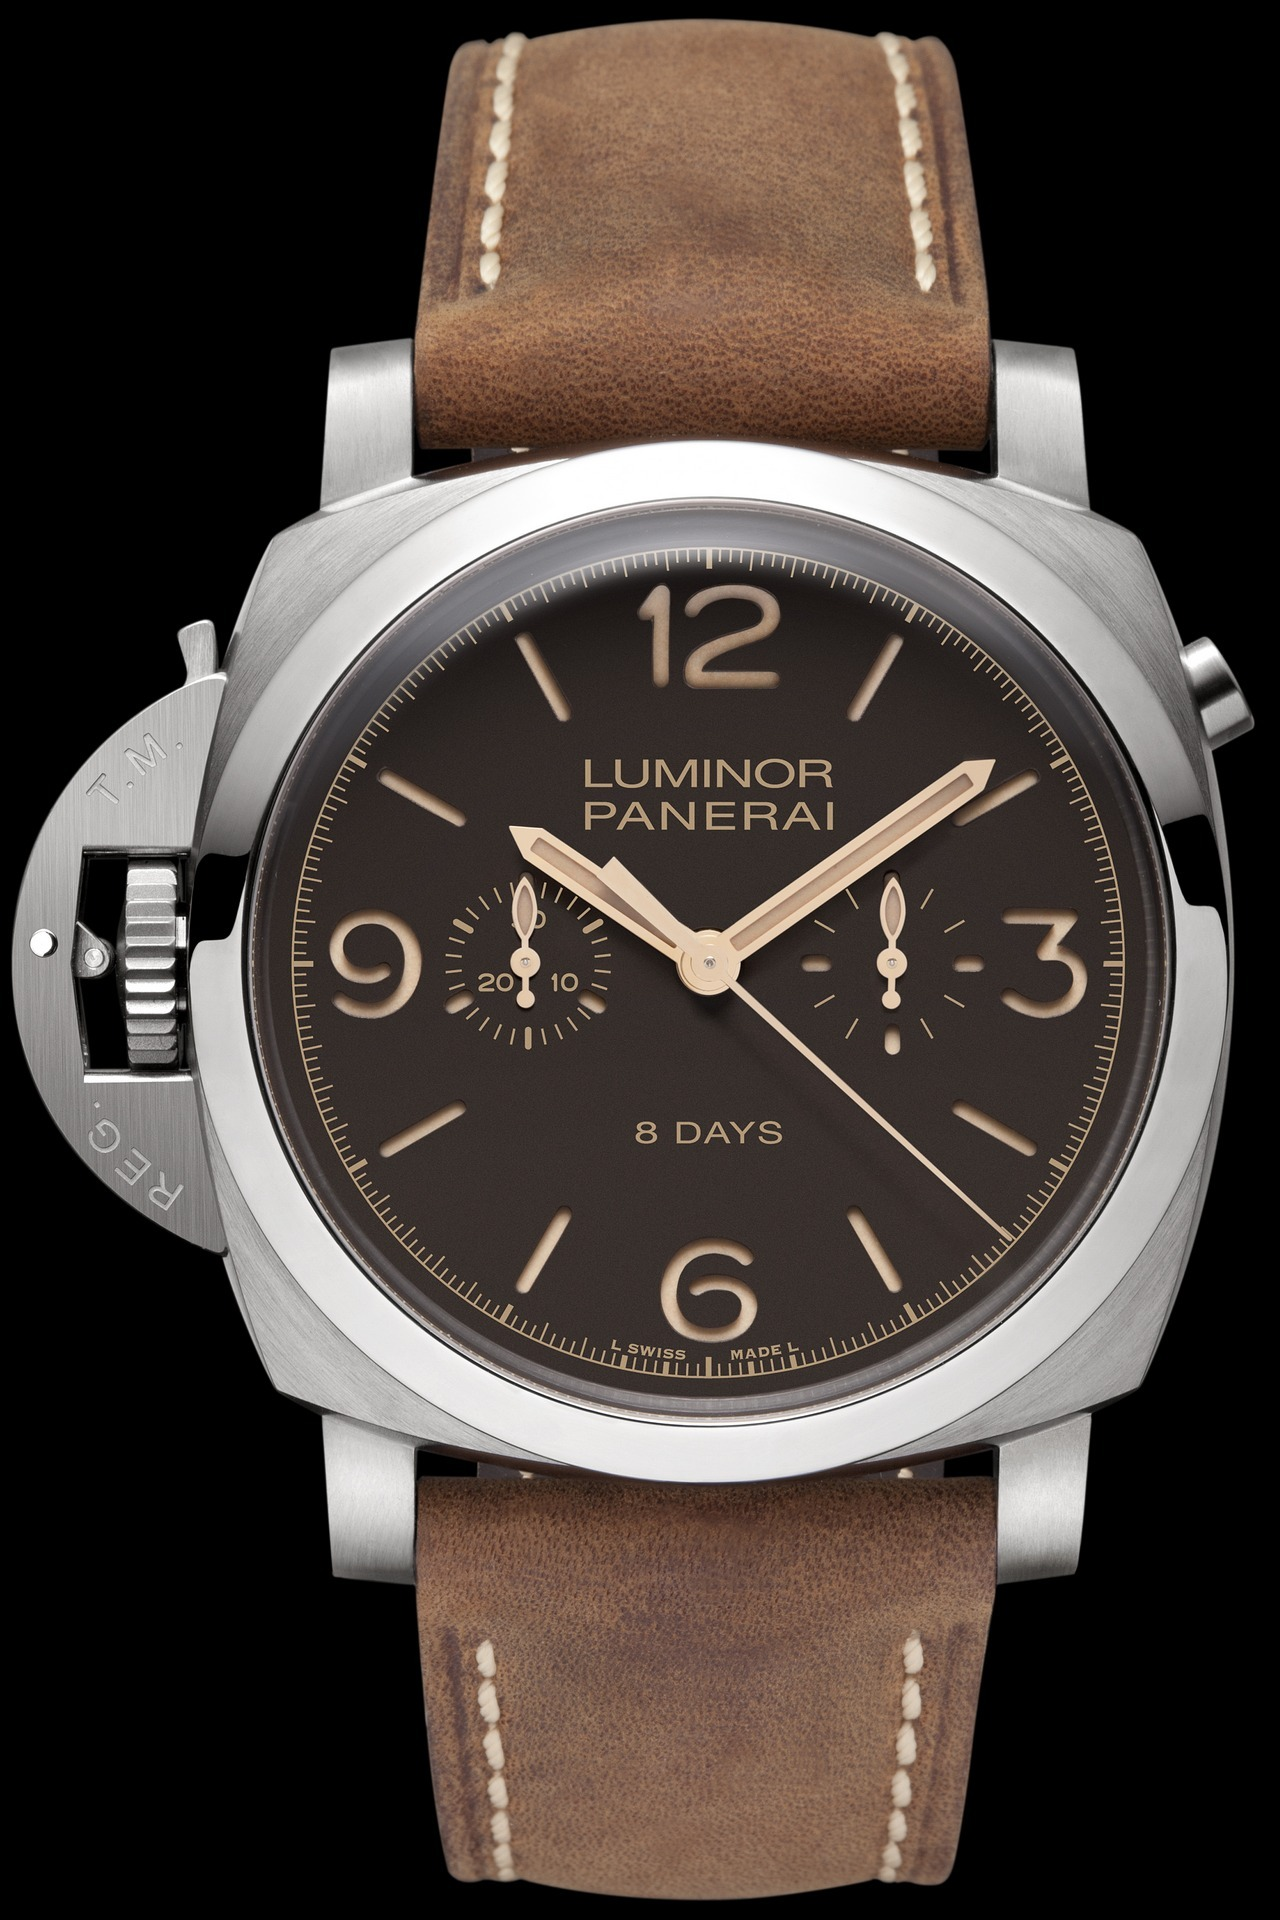 sihh-2014-officine-panerai-luminor-1950-chrono-monopulsante-left-handed-8-days-titanio-47mm-limited-edition-pam579-prezzo-price_0-100_1